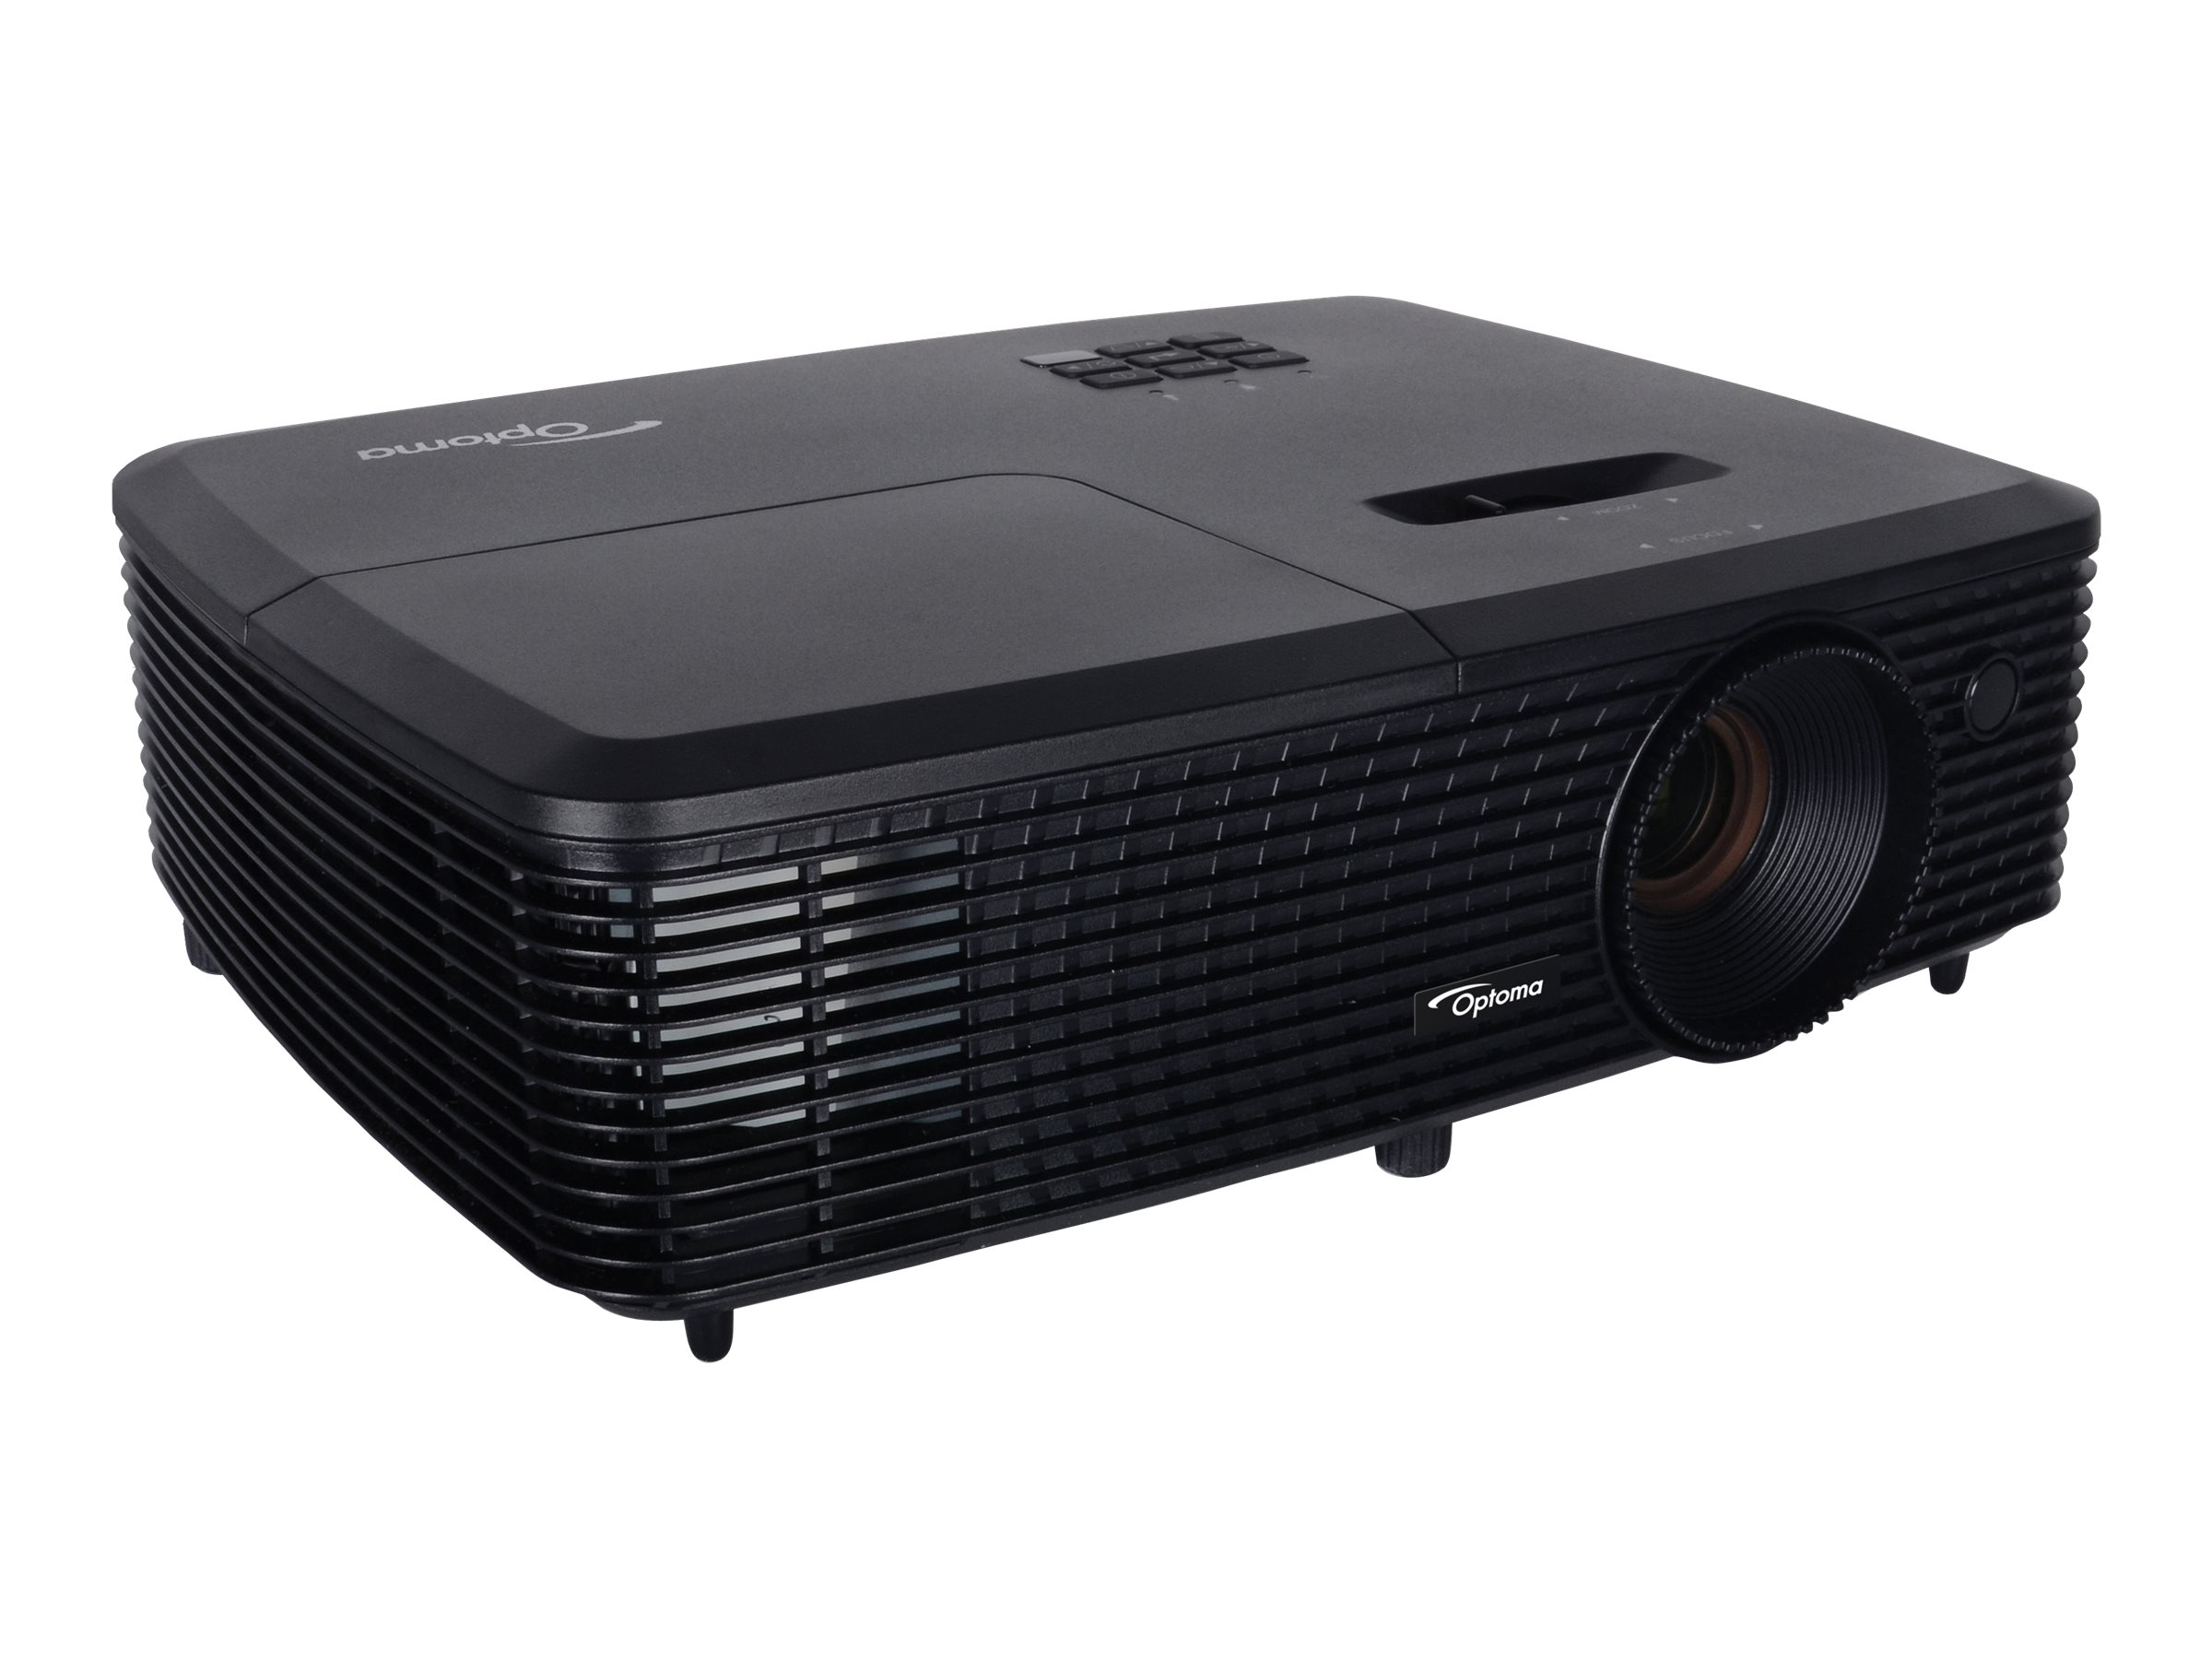 Optoma Technology S321 Image 3